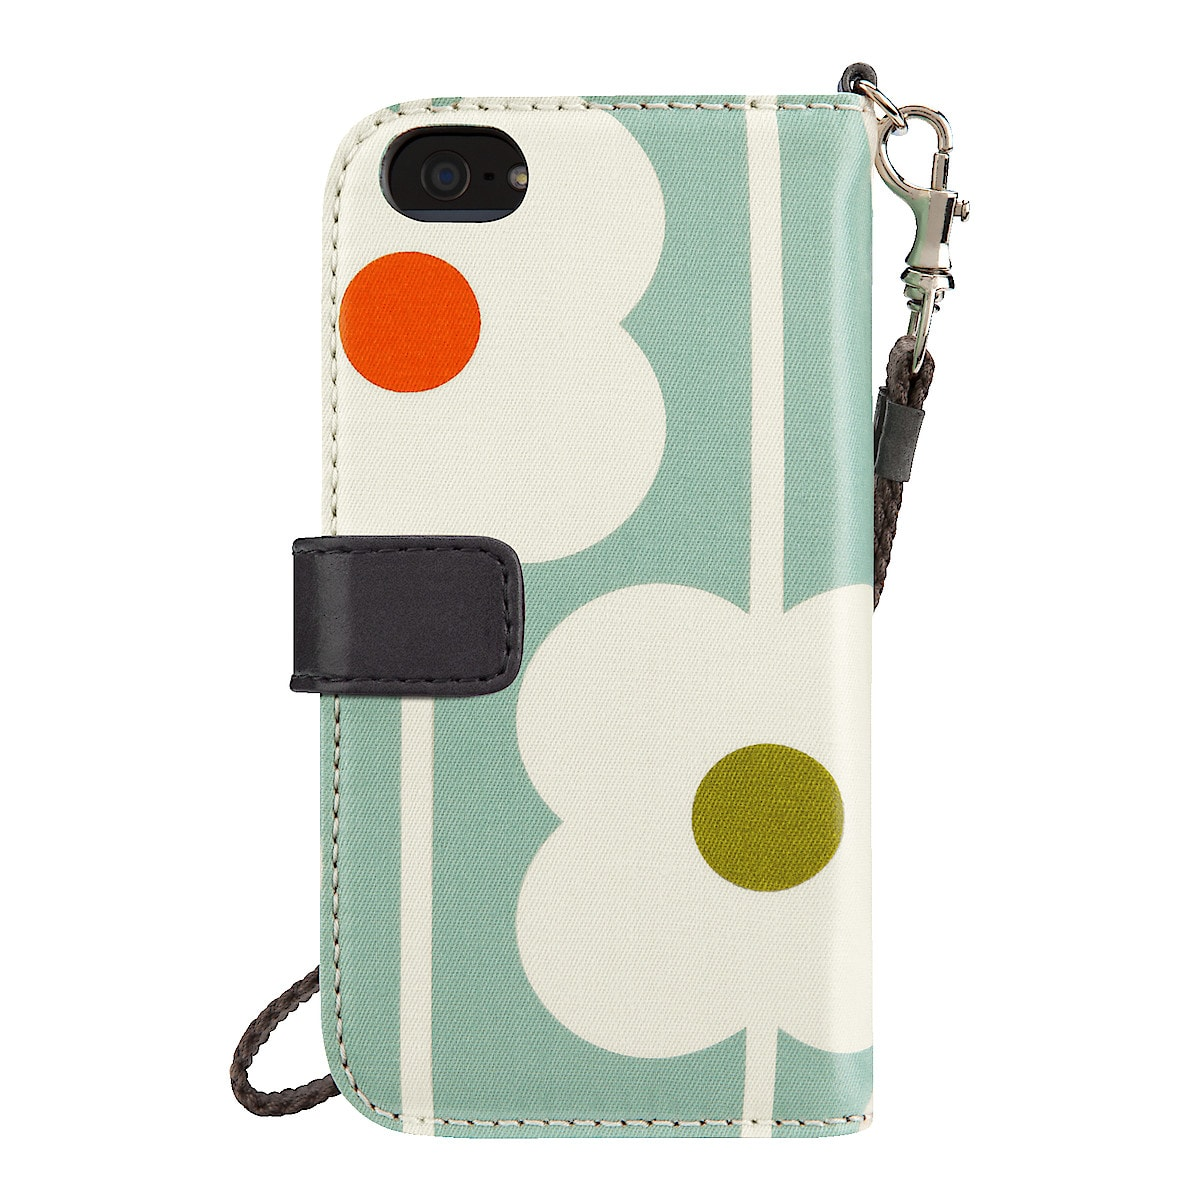 Orla Kiely Wallet Case for iPhone 5